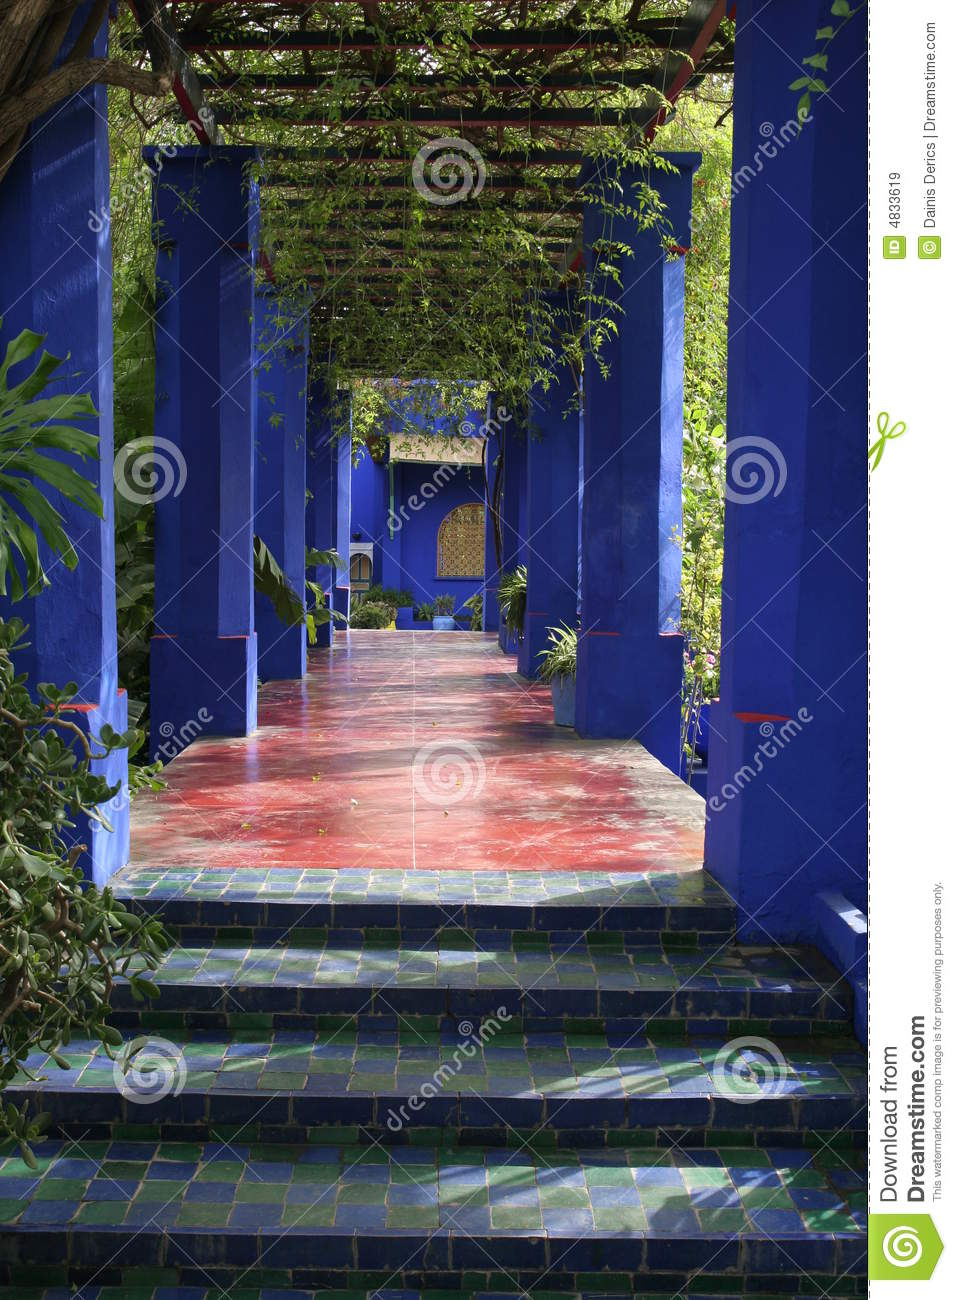 Jardine majorelle royalty free stock images image 4833619 for Jardin jardine